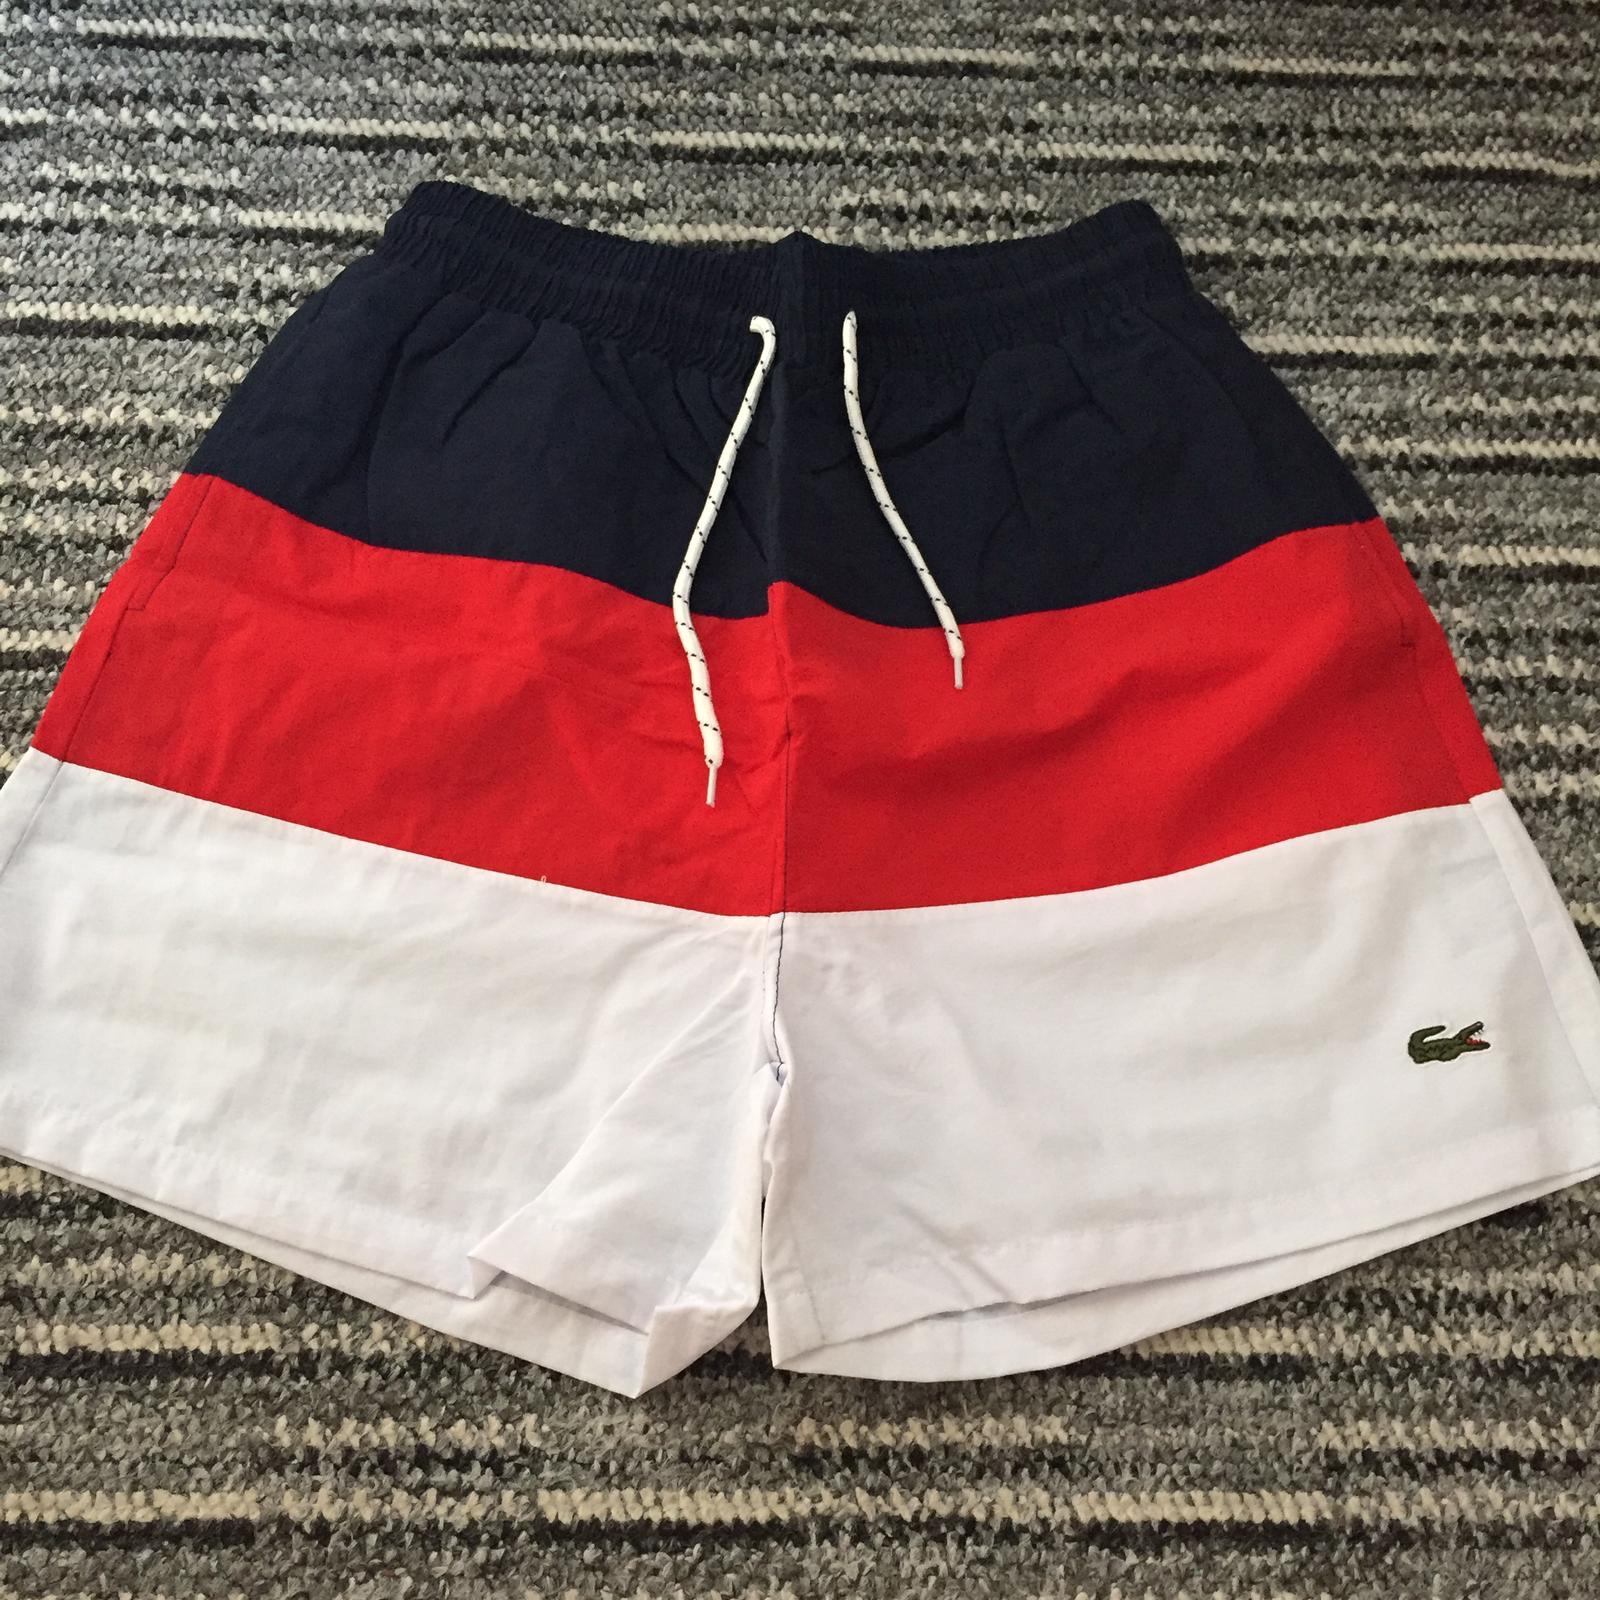 4ad78a89 men's Lacoste live swim shorts navy red & white... - Depop